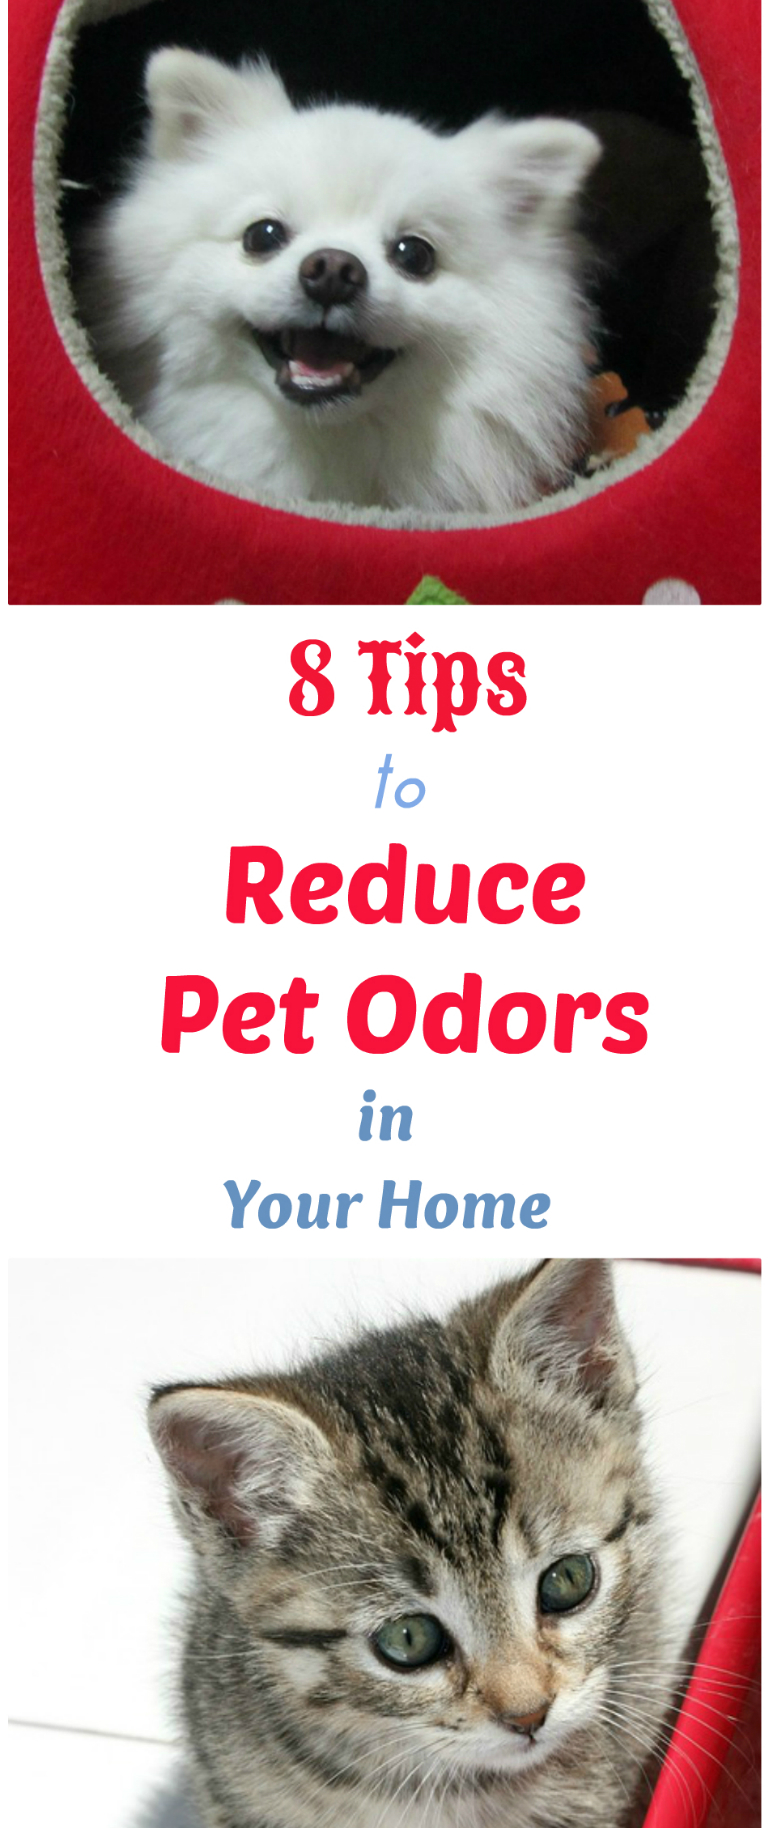 House Odors 8 tips to reduce pet odors and make your house less stinky